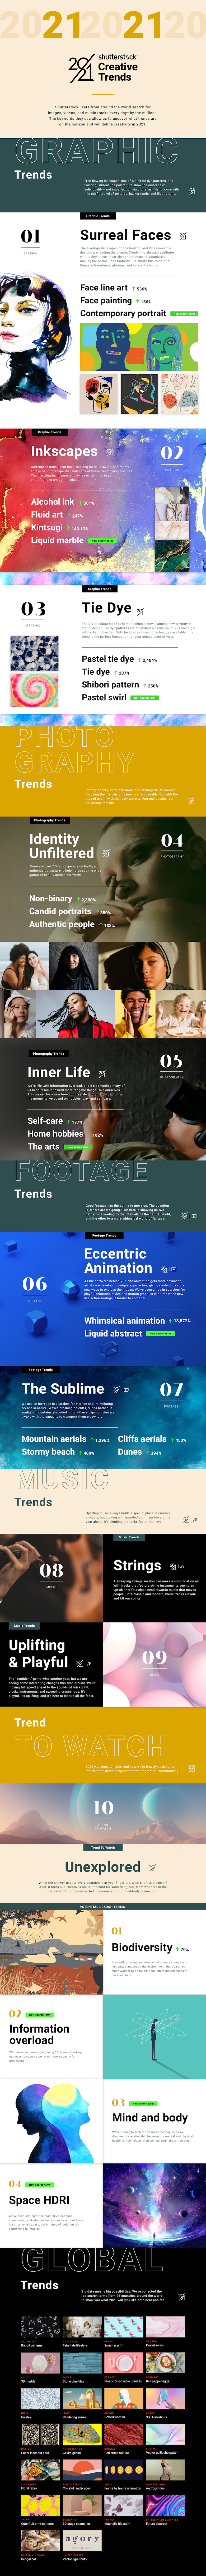 Top Creative Trends 2021 - Graphic Design, Photography, Footage, Animation, Music, And Global Trends